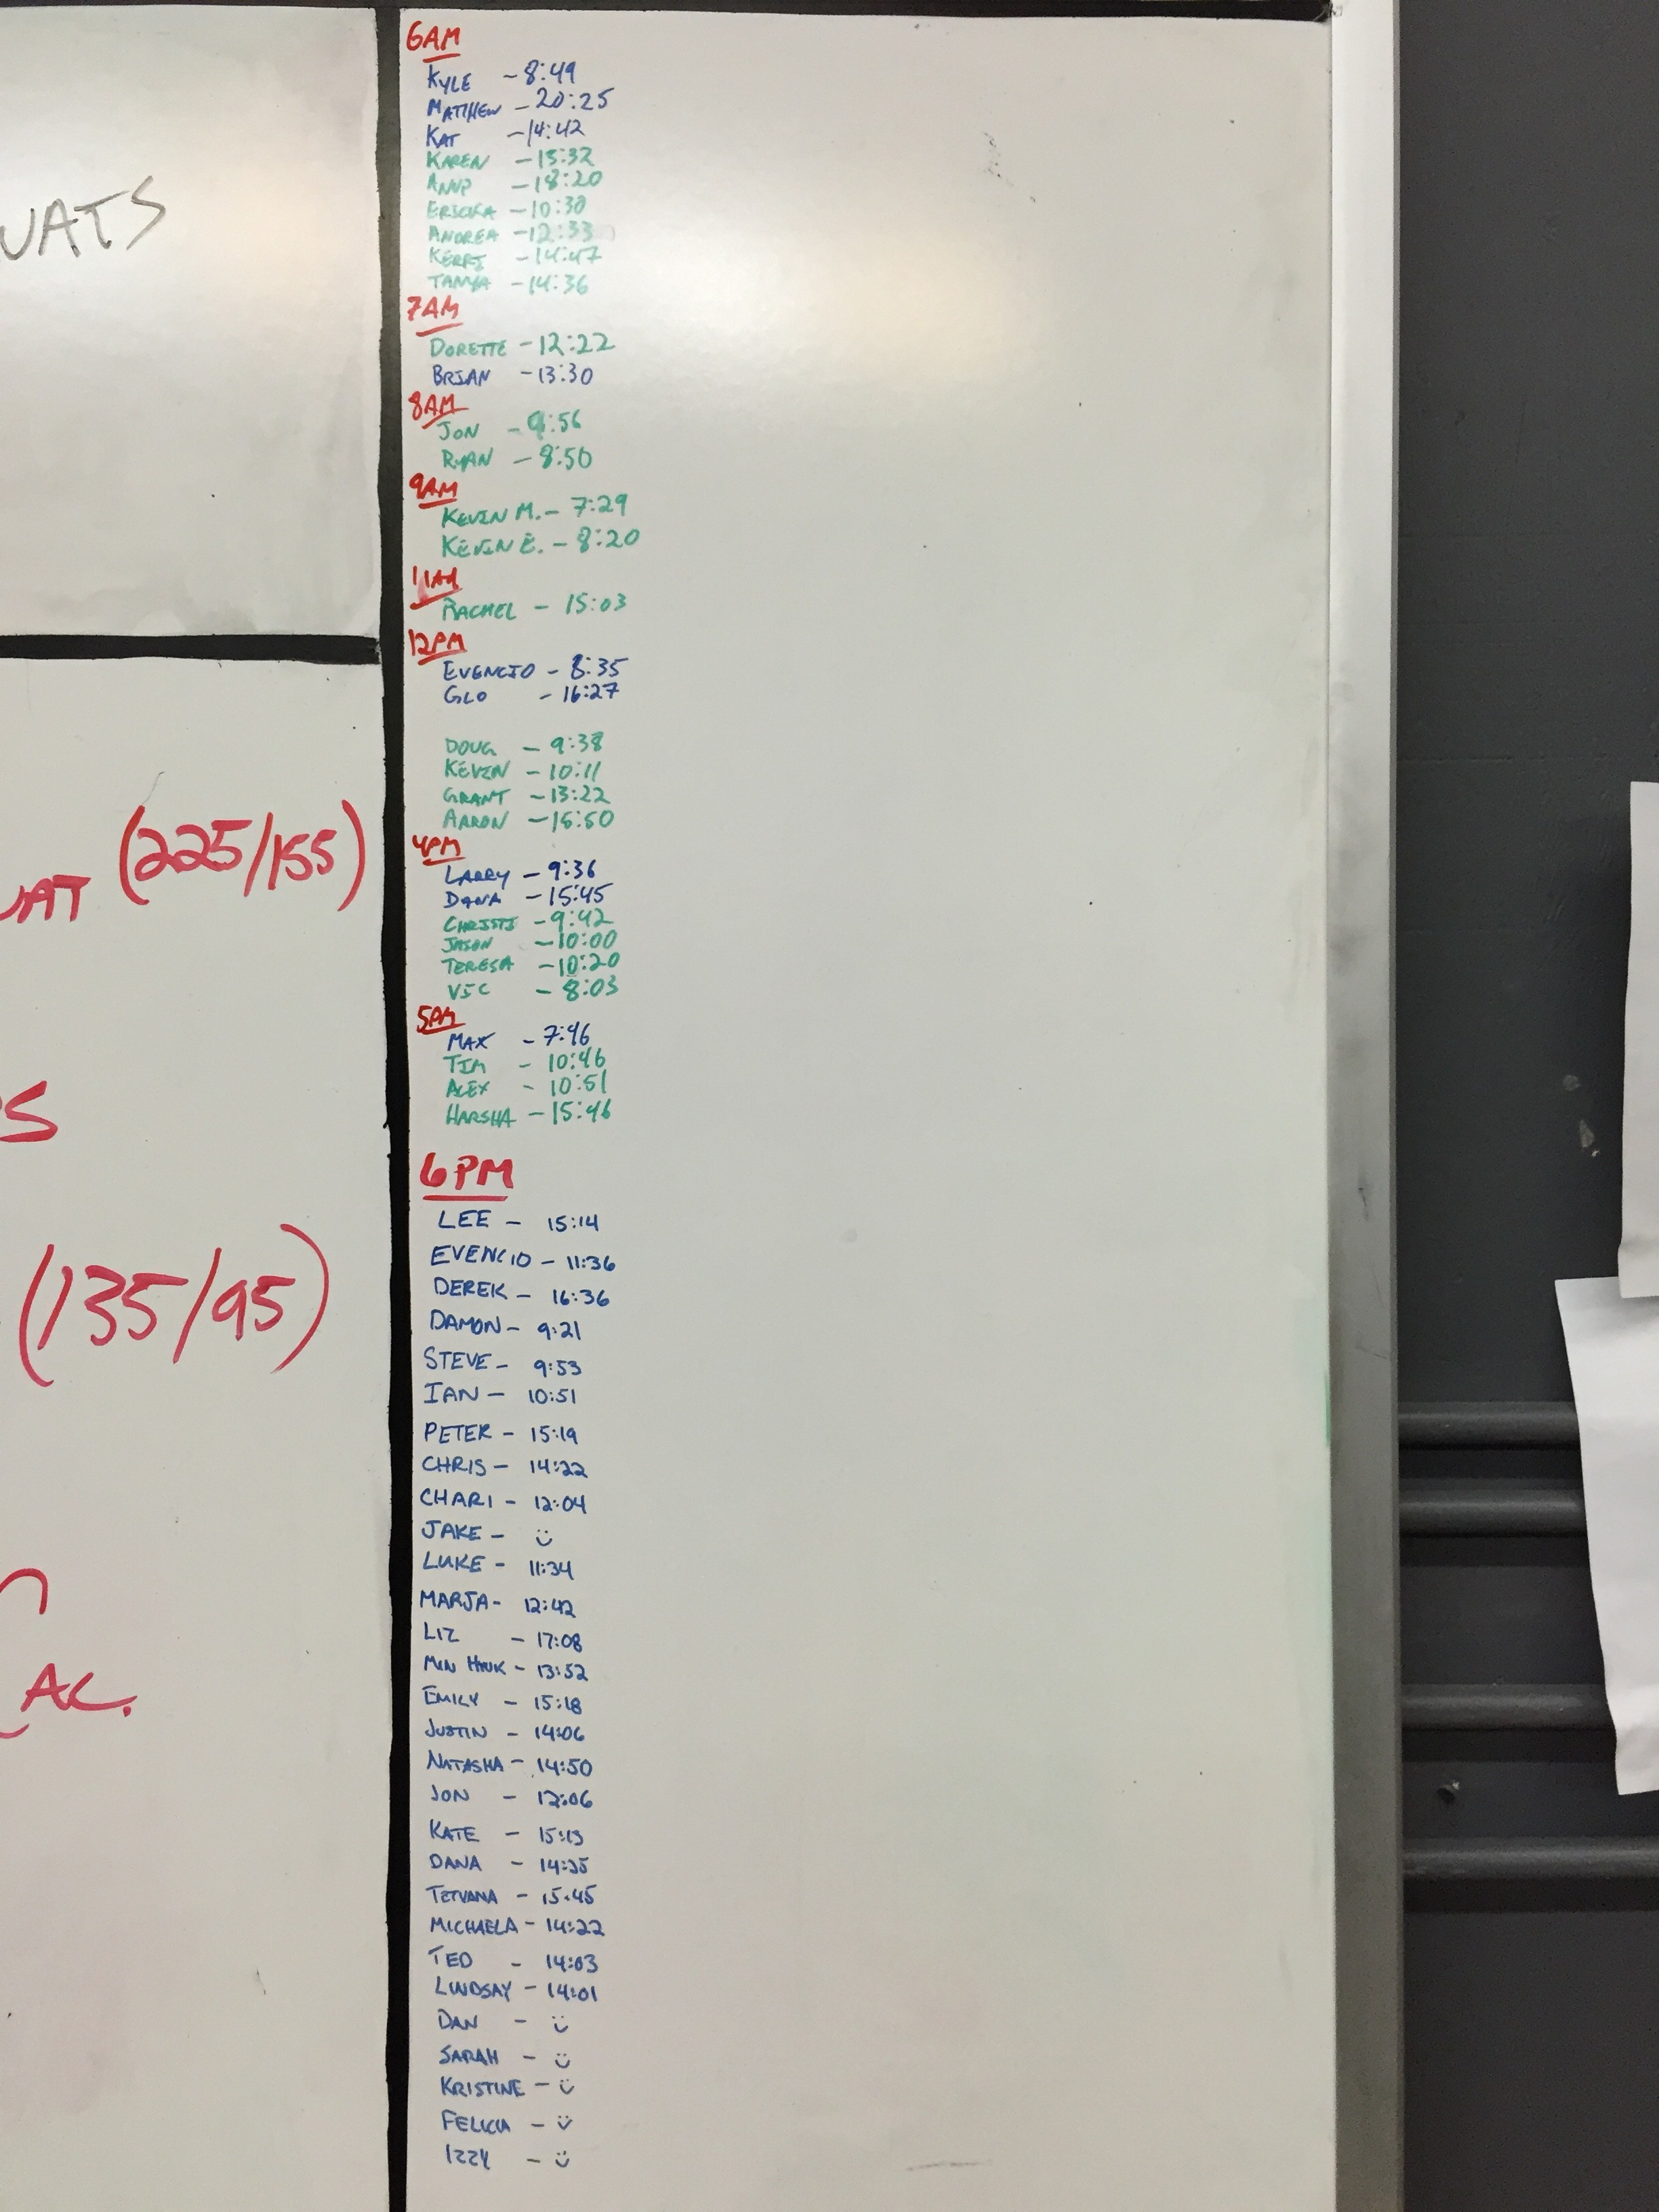 Sep 26 WOD Results